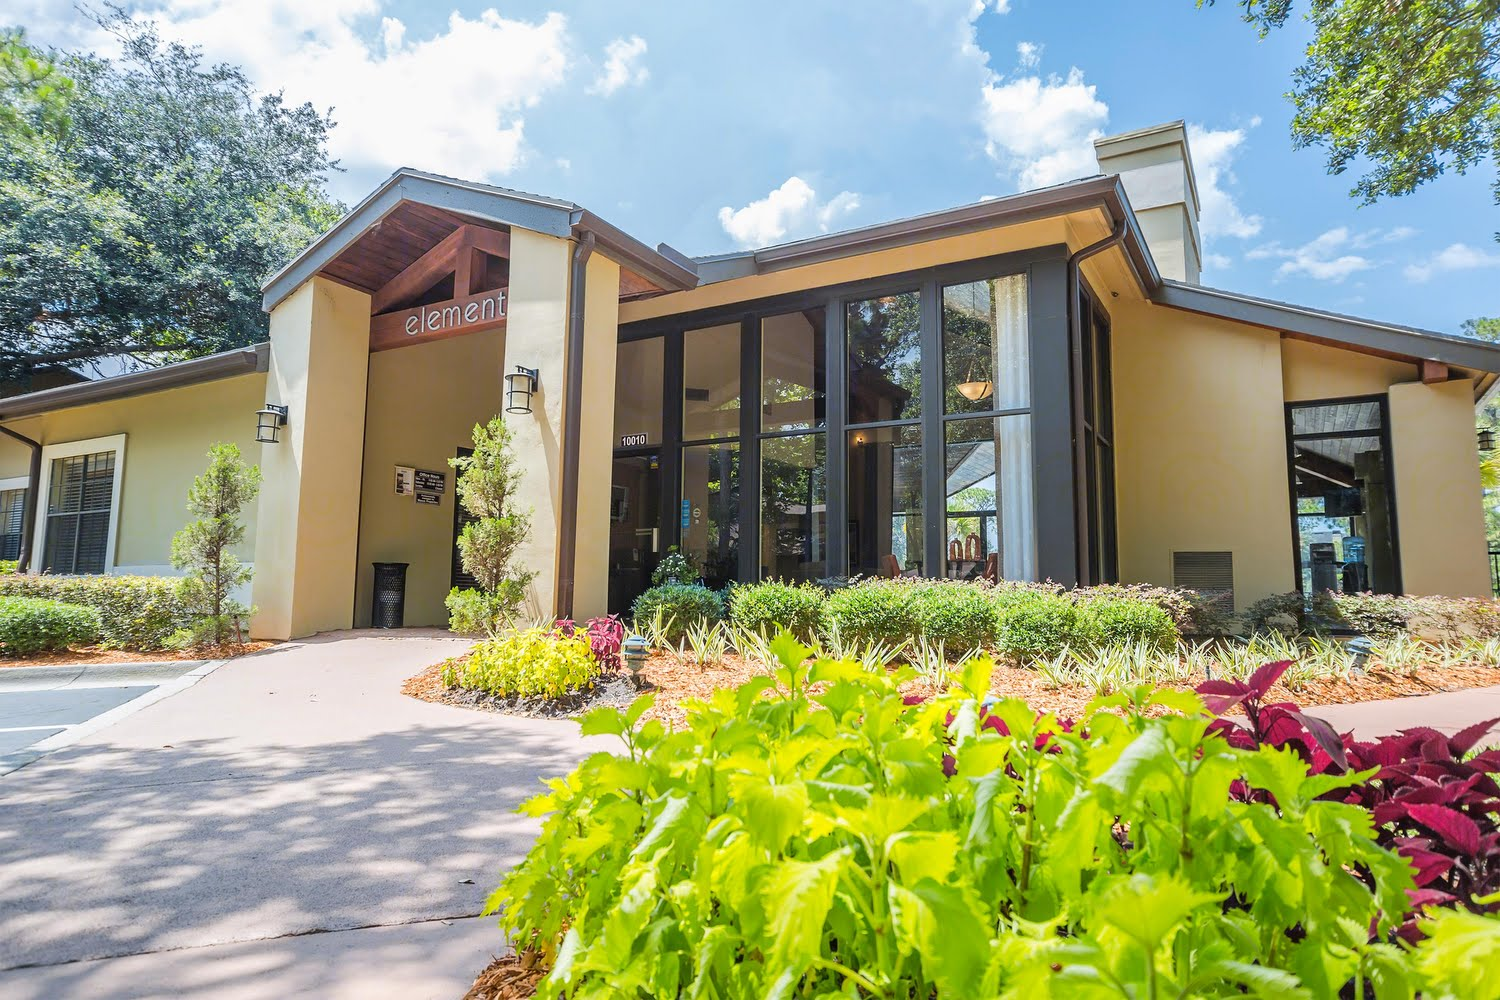 Elements of belle rive apartments in jacksonville fl for Bell rive